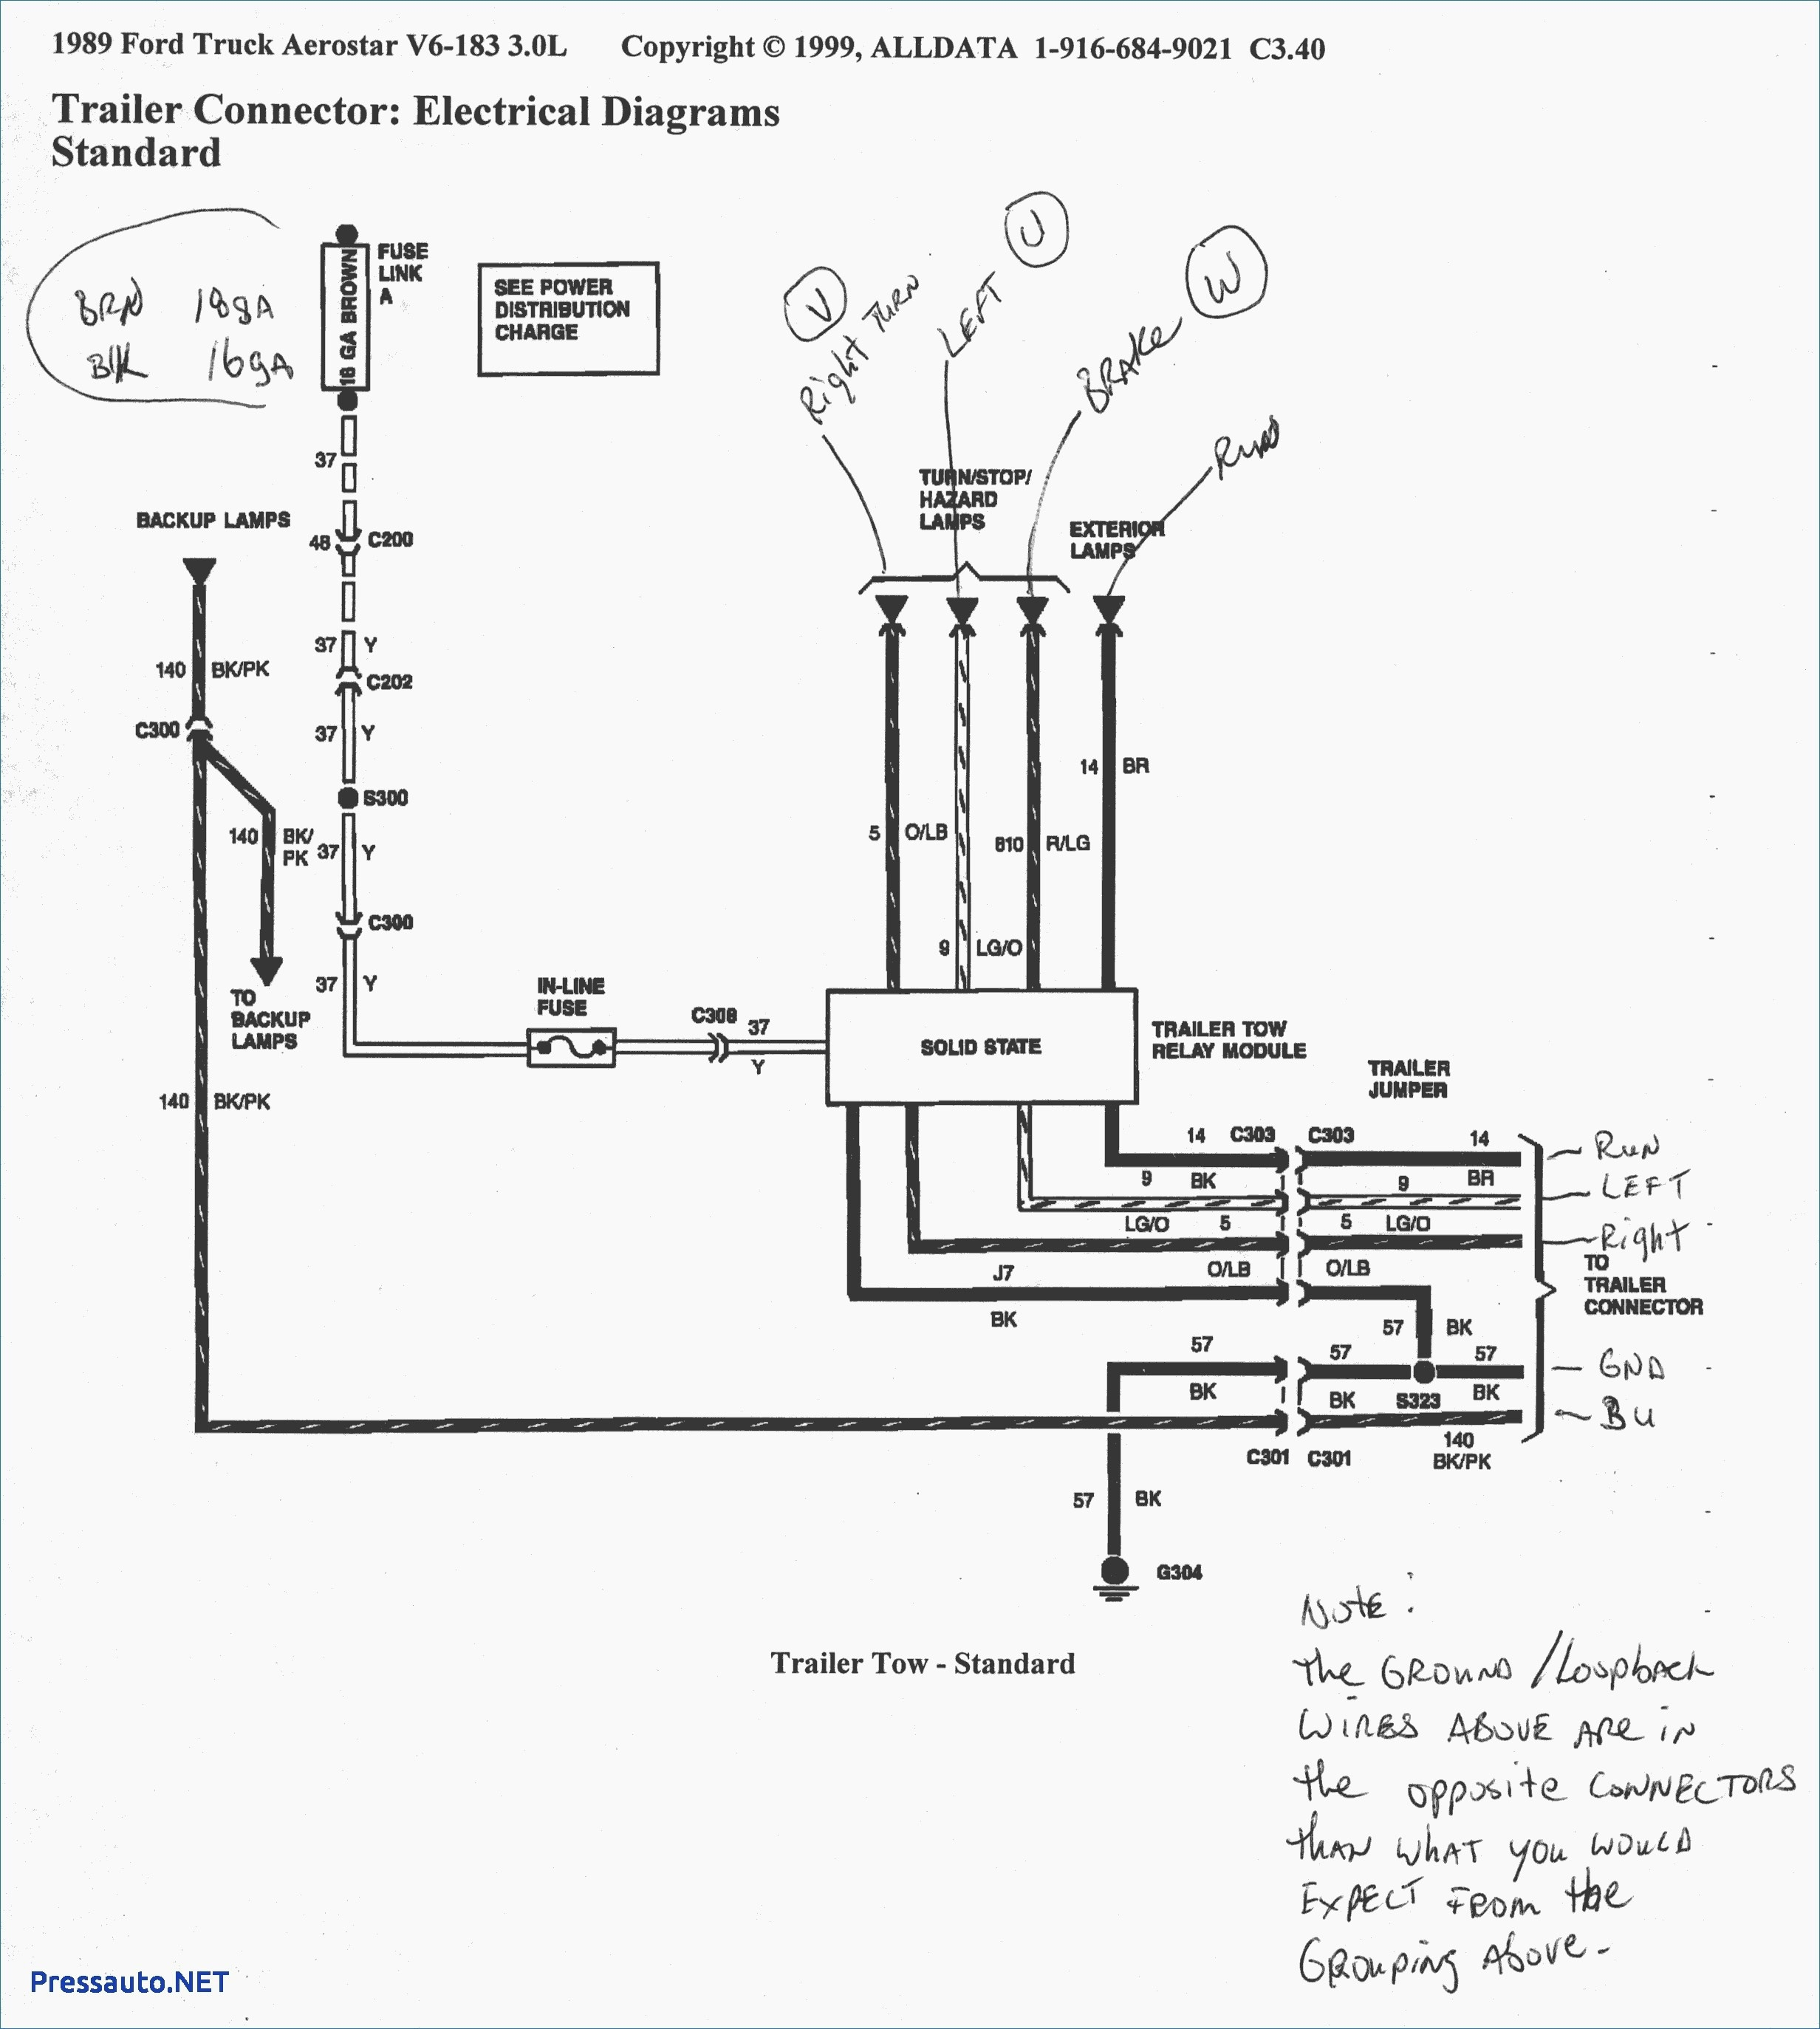 Ford F150 Wiring Harness Diagram | Free Wiring Diagram F Wiring Harness Diagram on